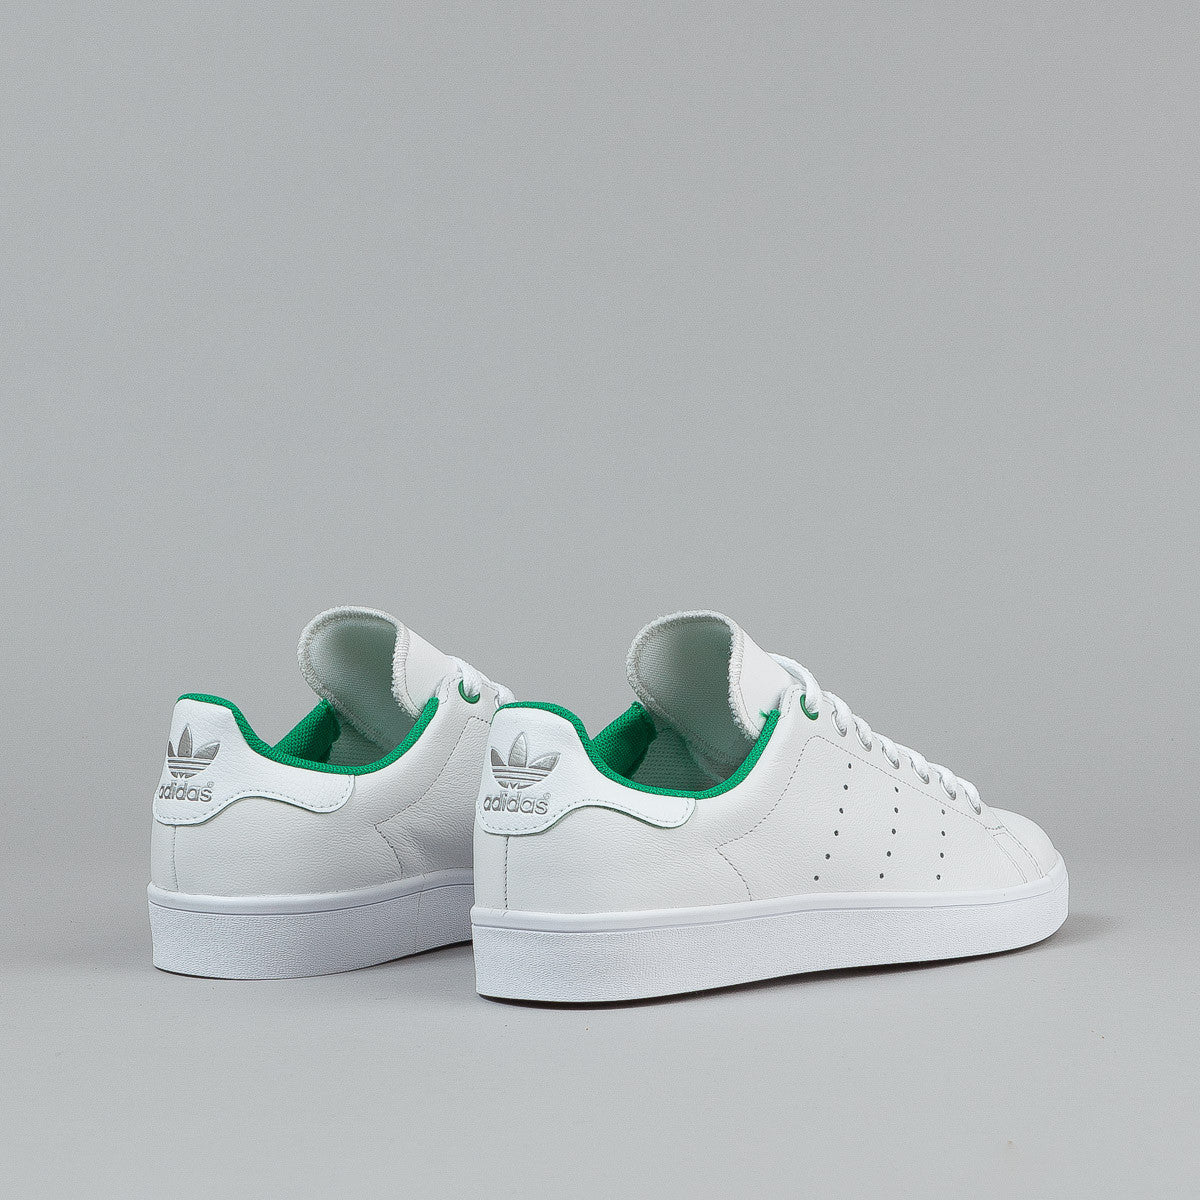 uk availability 6b8ab e037c Adidas Shoes Stan Smith Vulc aoriginal.co.uk